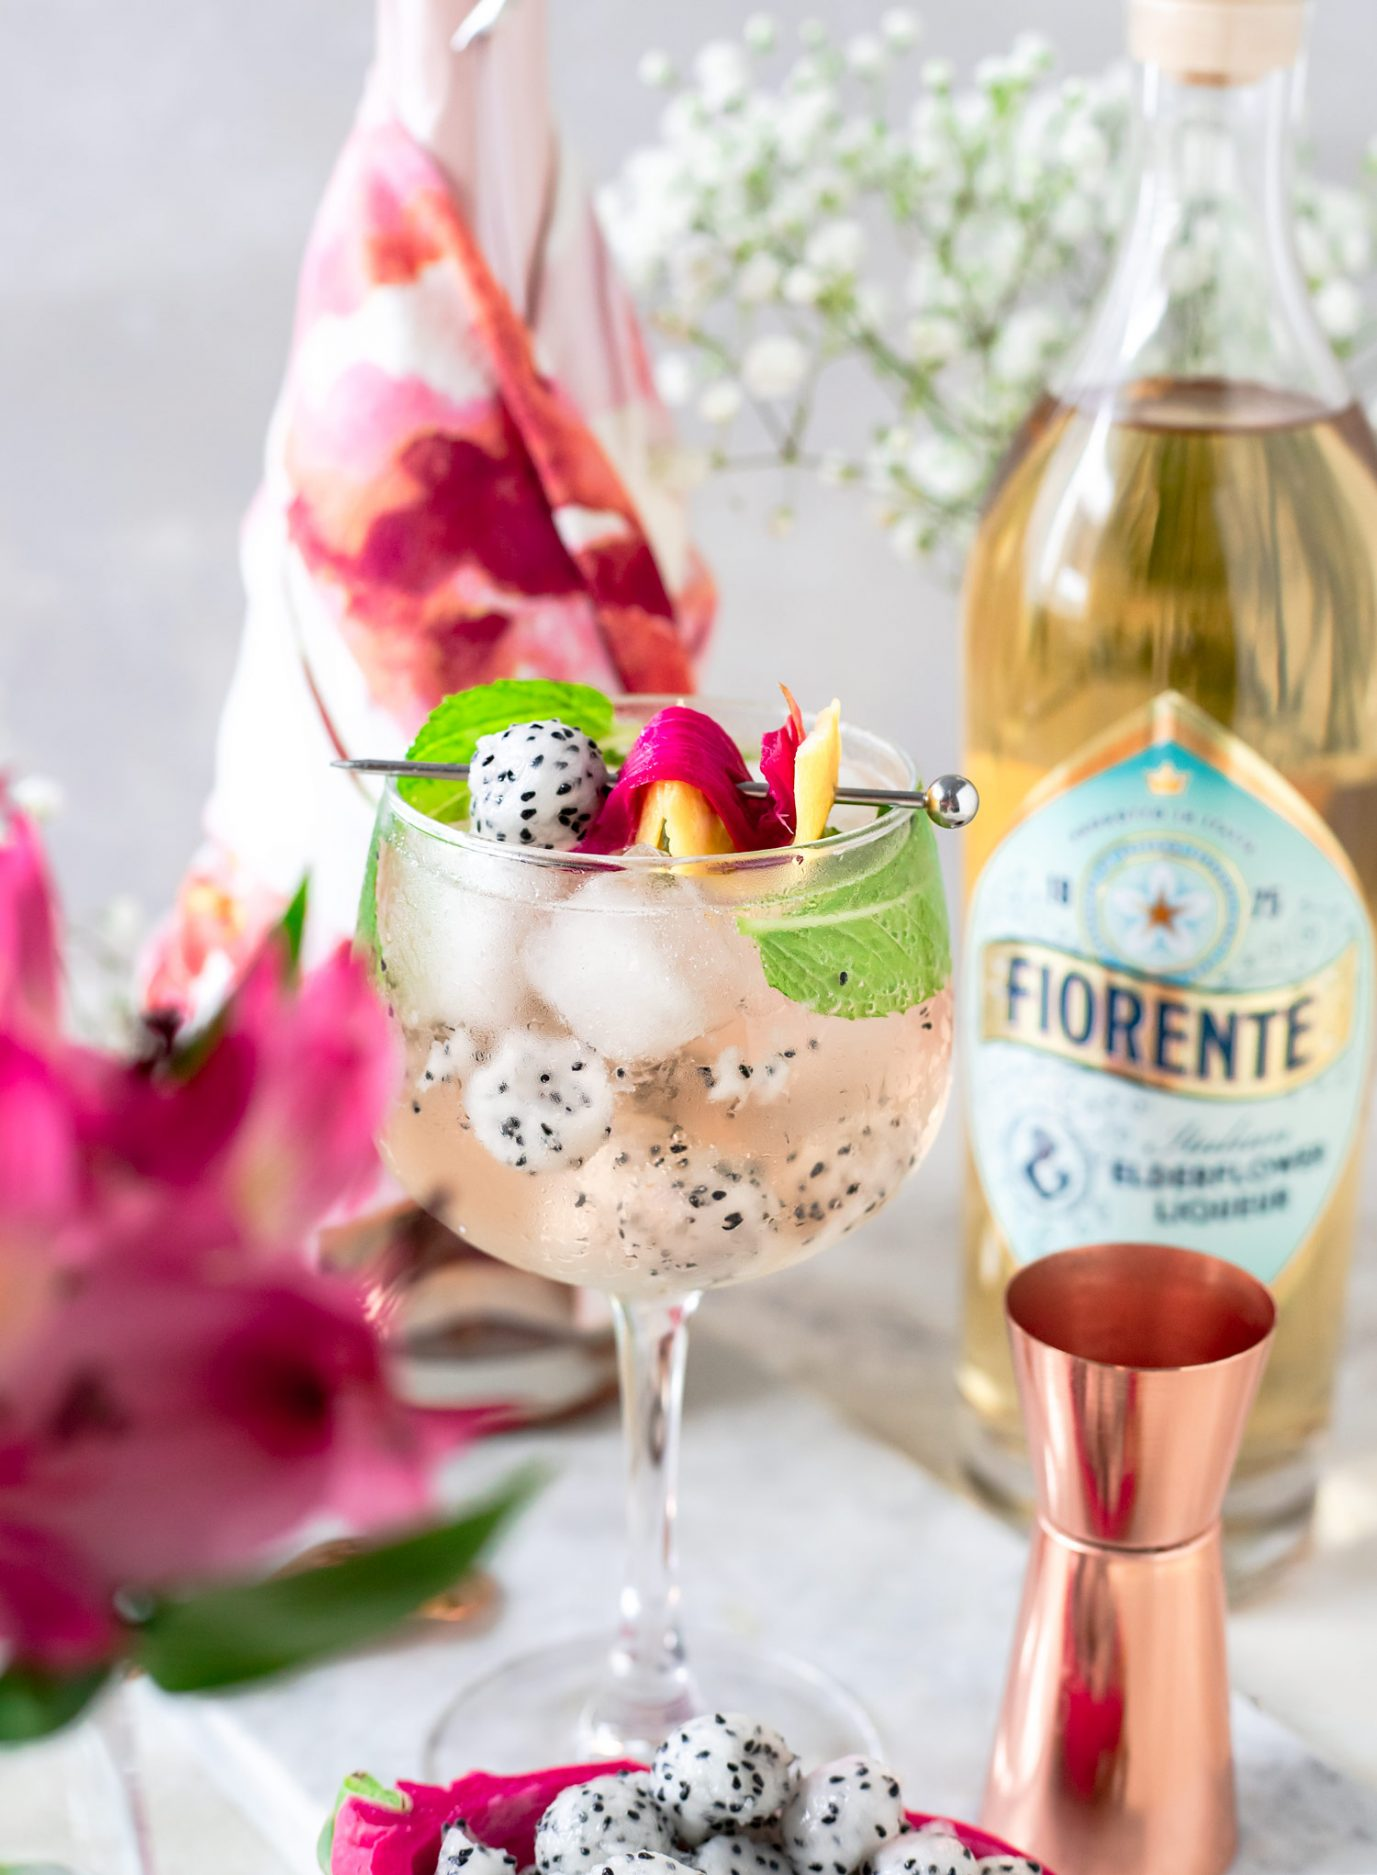 Spritz cocktail season is here and this Rosé Dragon Fruit Spritz is a riff off the classic with bubbly rosé, Fiorente Elderflower Liqueur, mint, citrus, and dragon fruit for a light and bubbly cocktail recipe. #Spritz #Elderflower #ElleTalk #ItsSpritzSeason #CocktailRecipe #DrinkRecipe #Sponsored